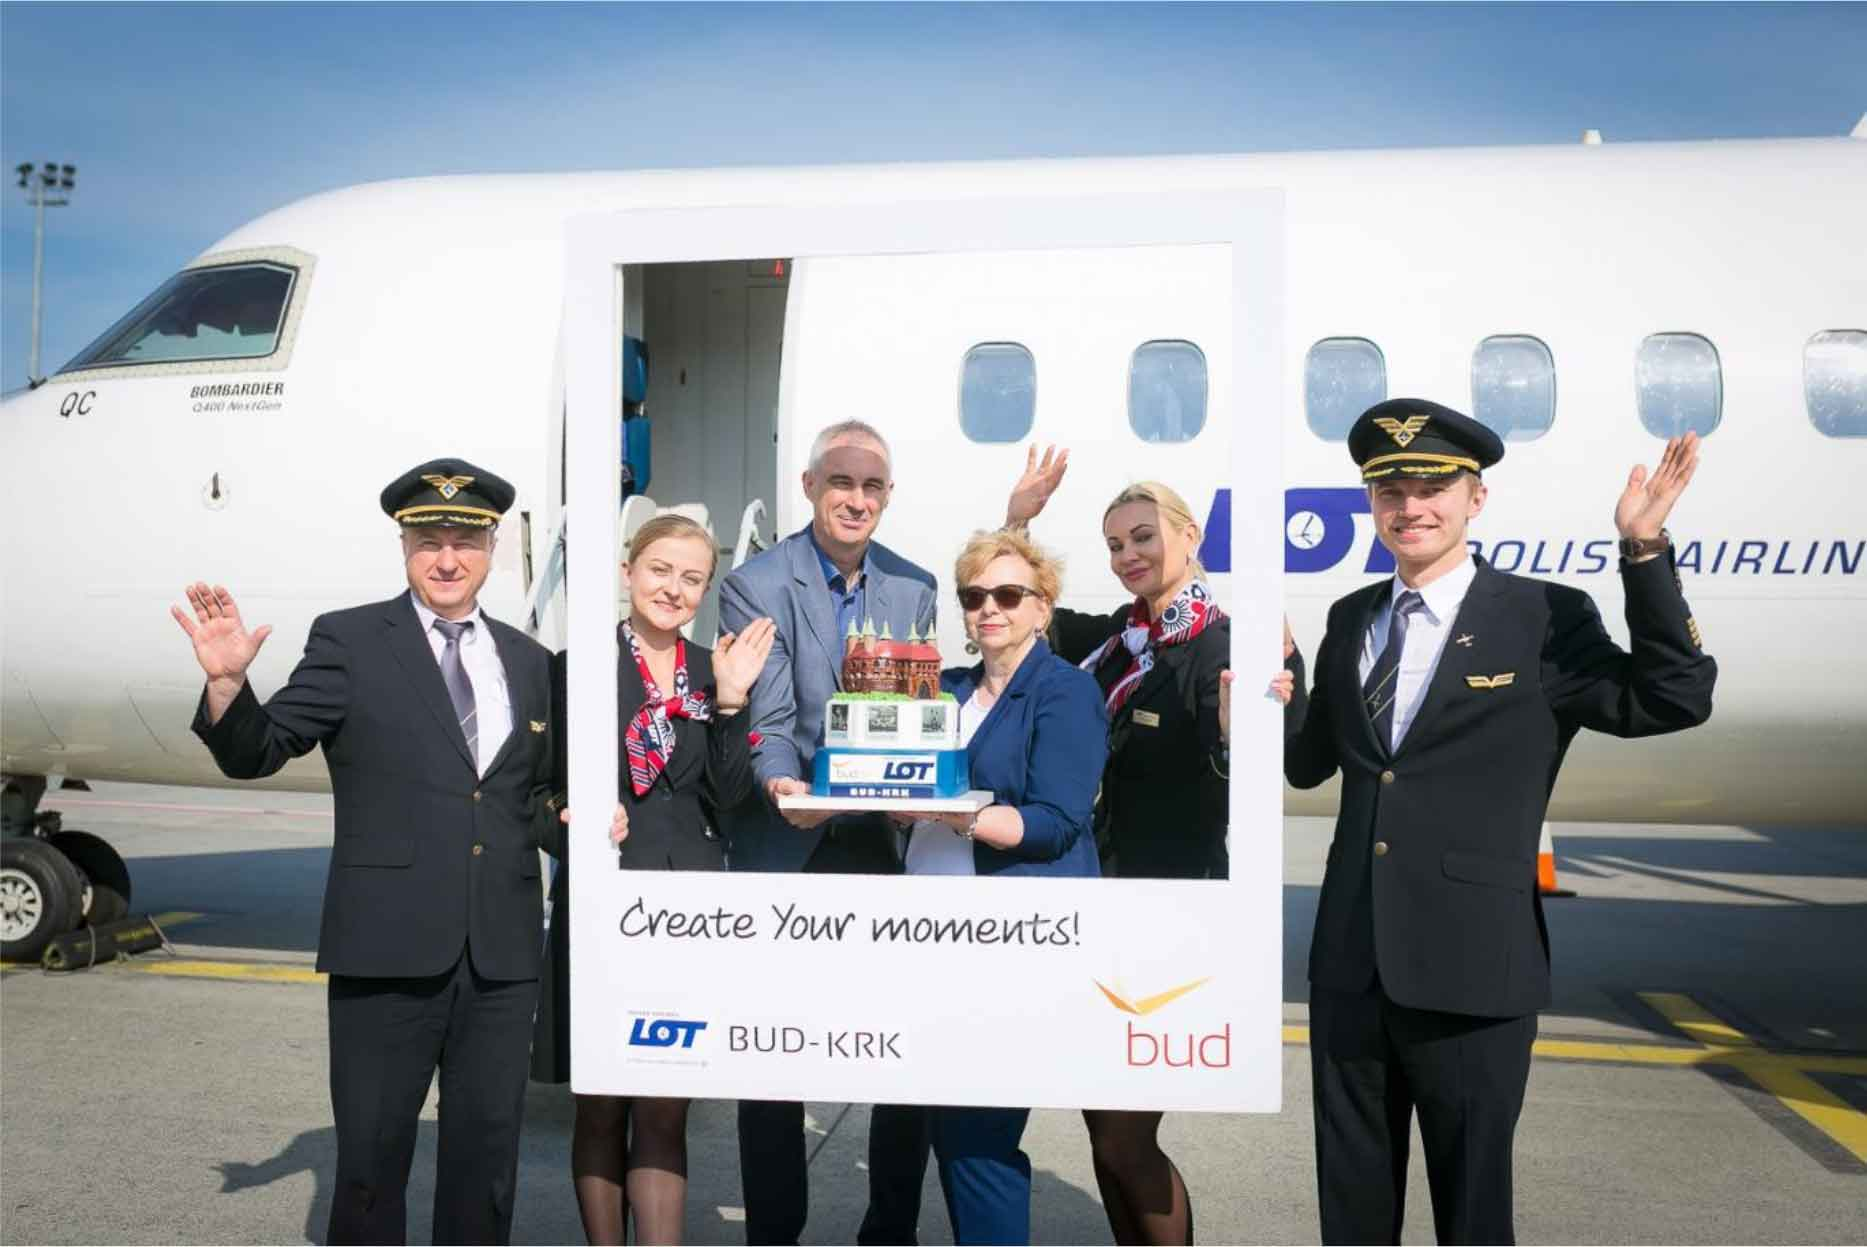 Budapest Airport new link inaugural flight of LOT Polish Airlines' service to Kraków